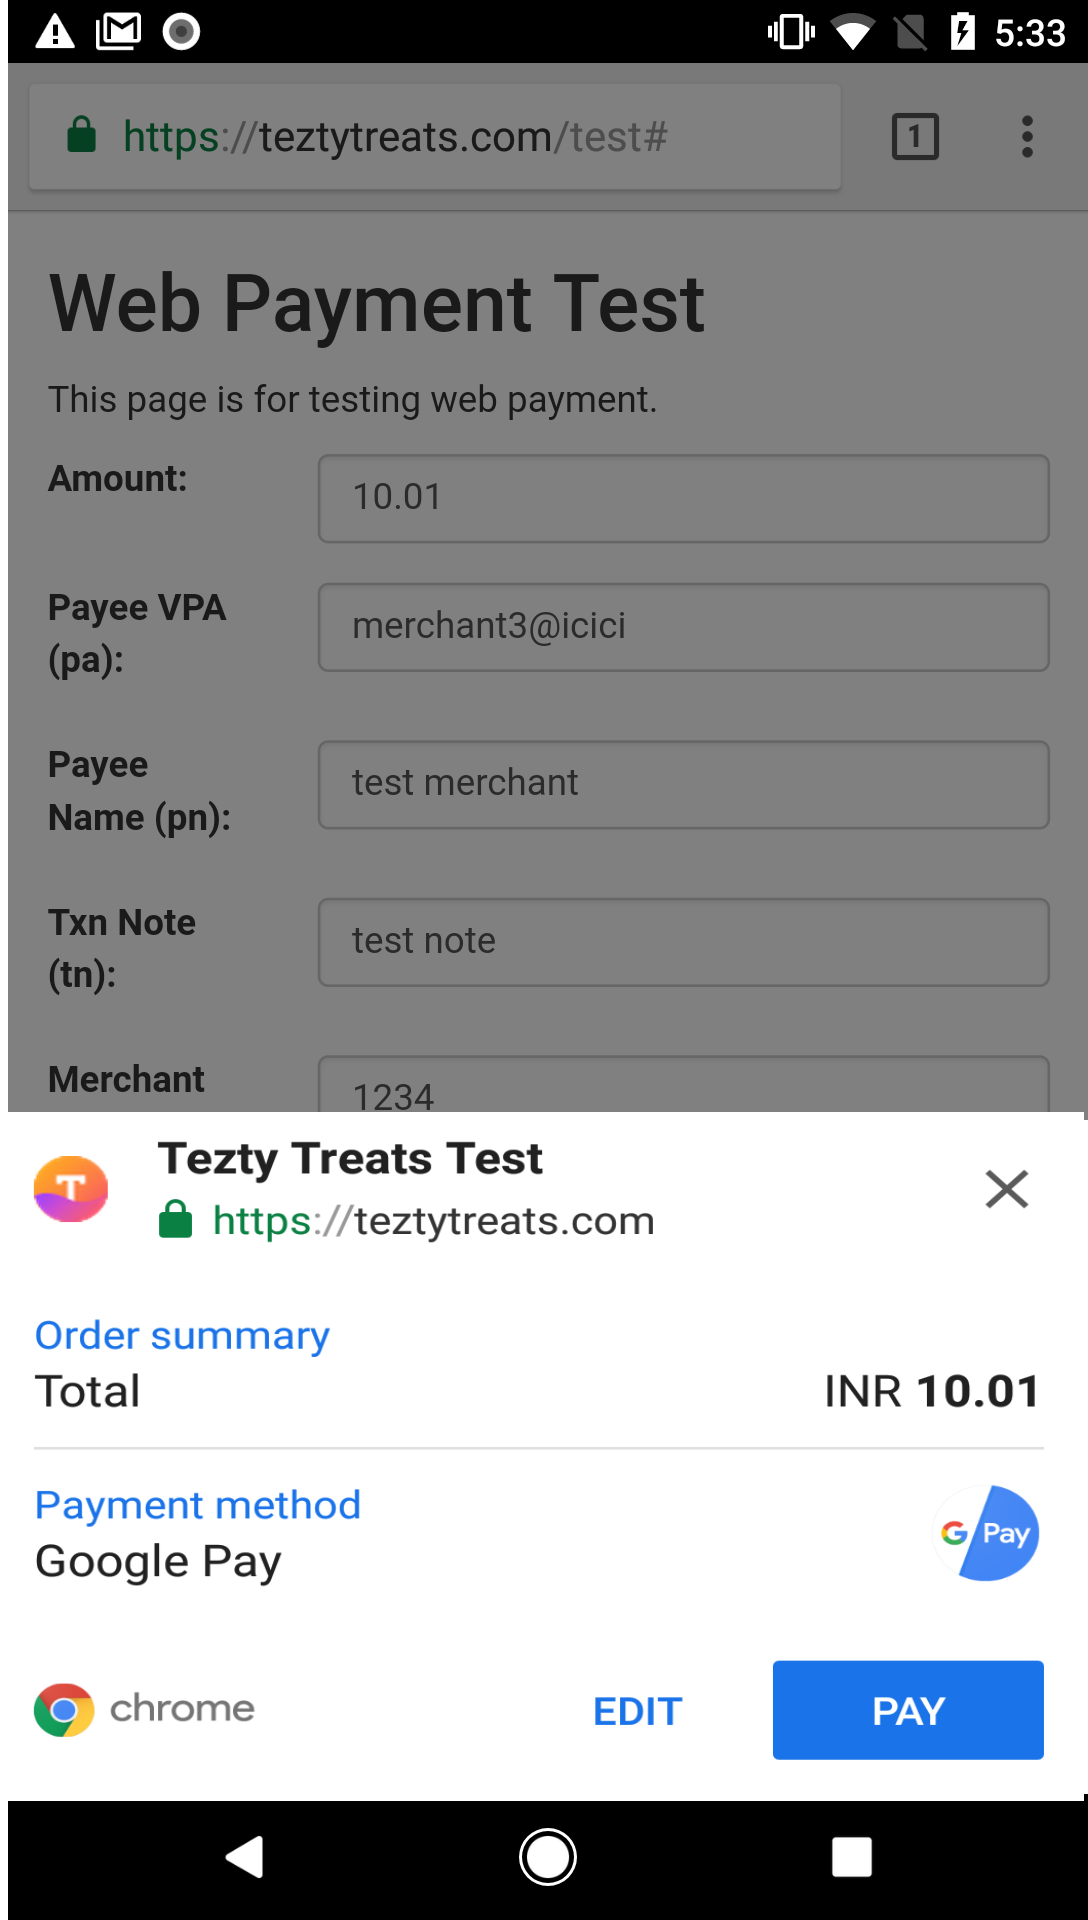 Select Google Pay for payment